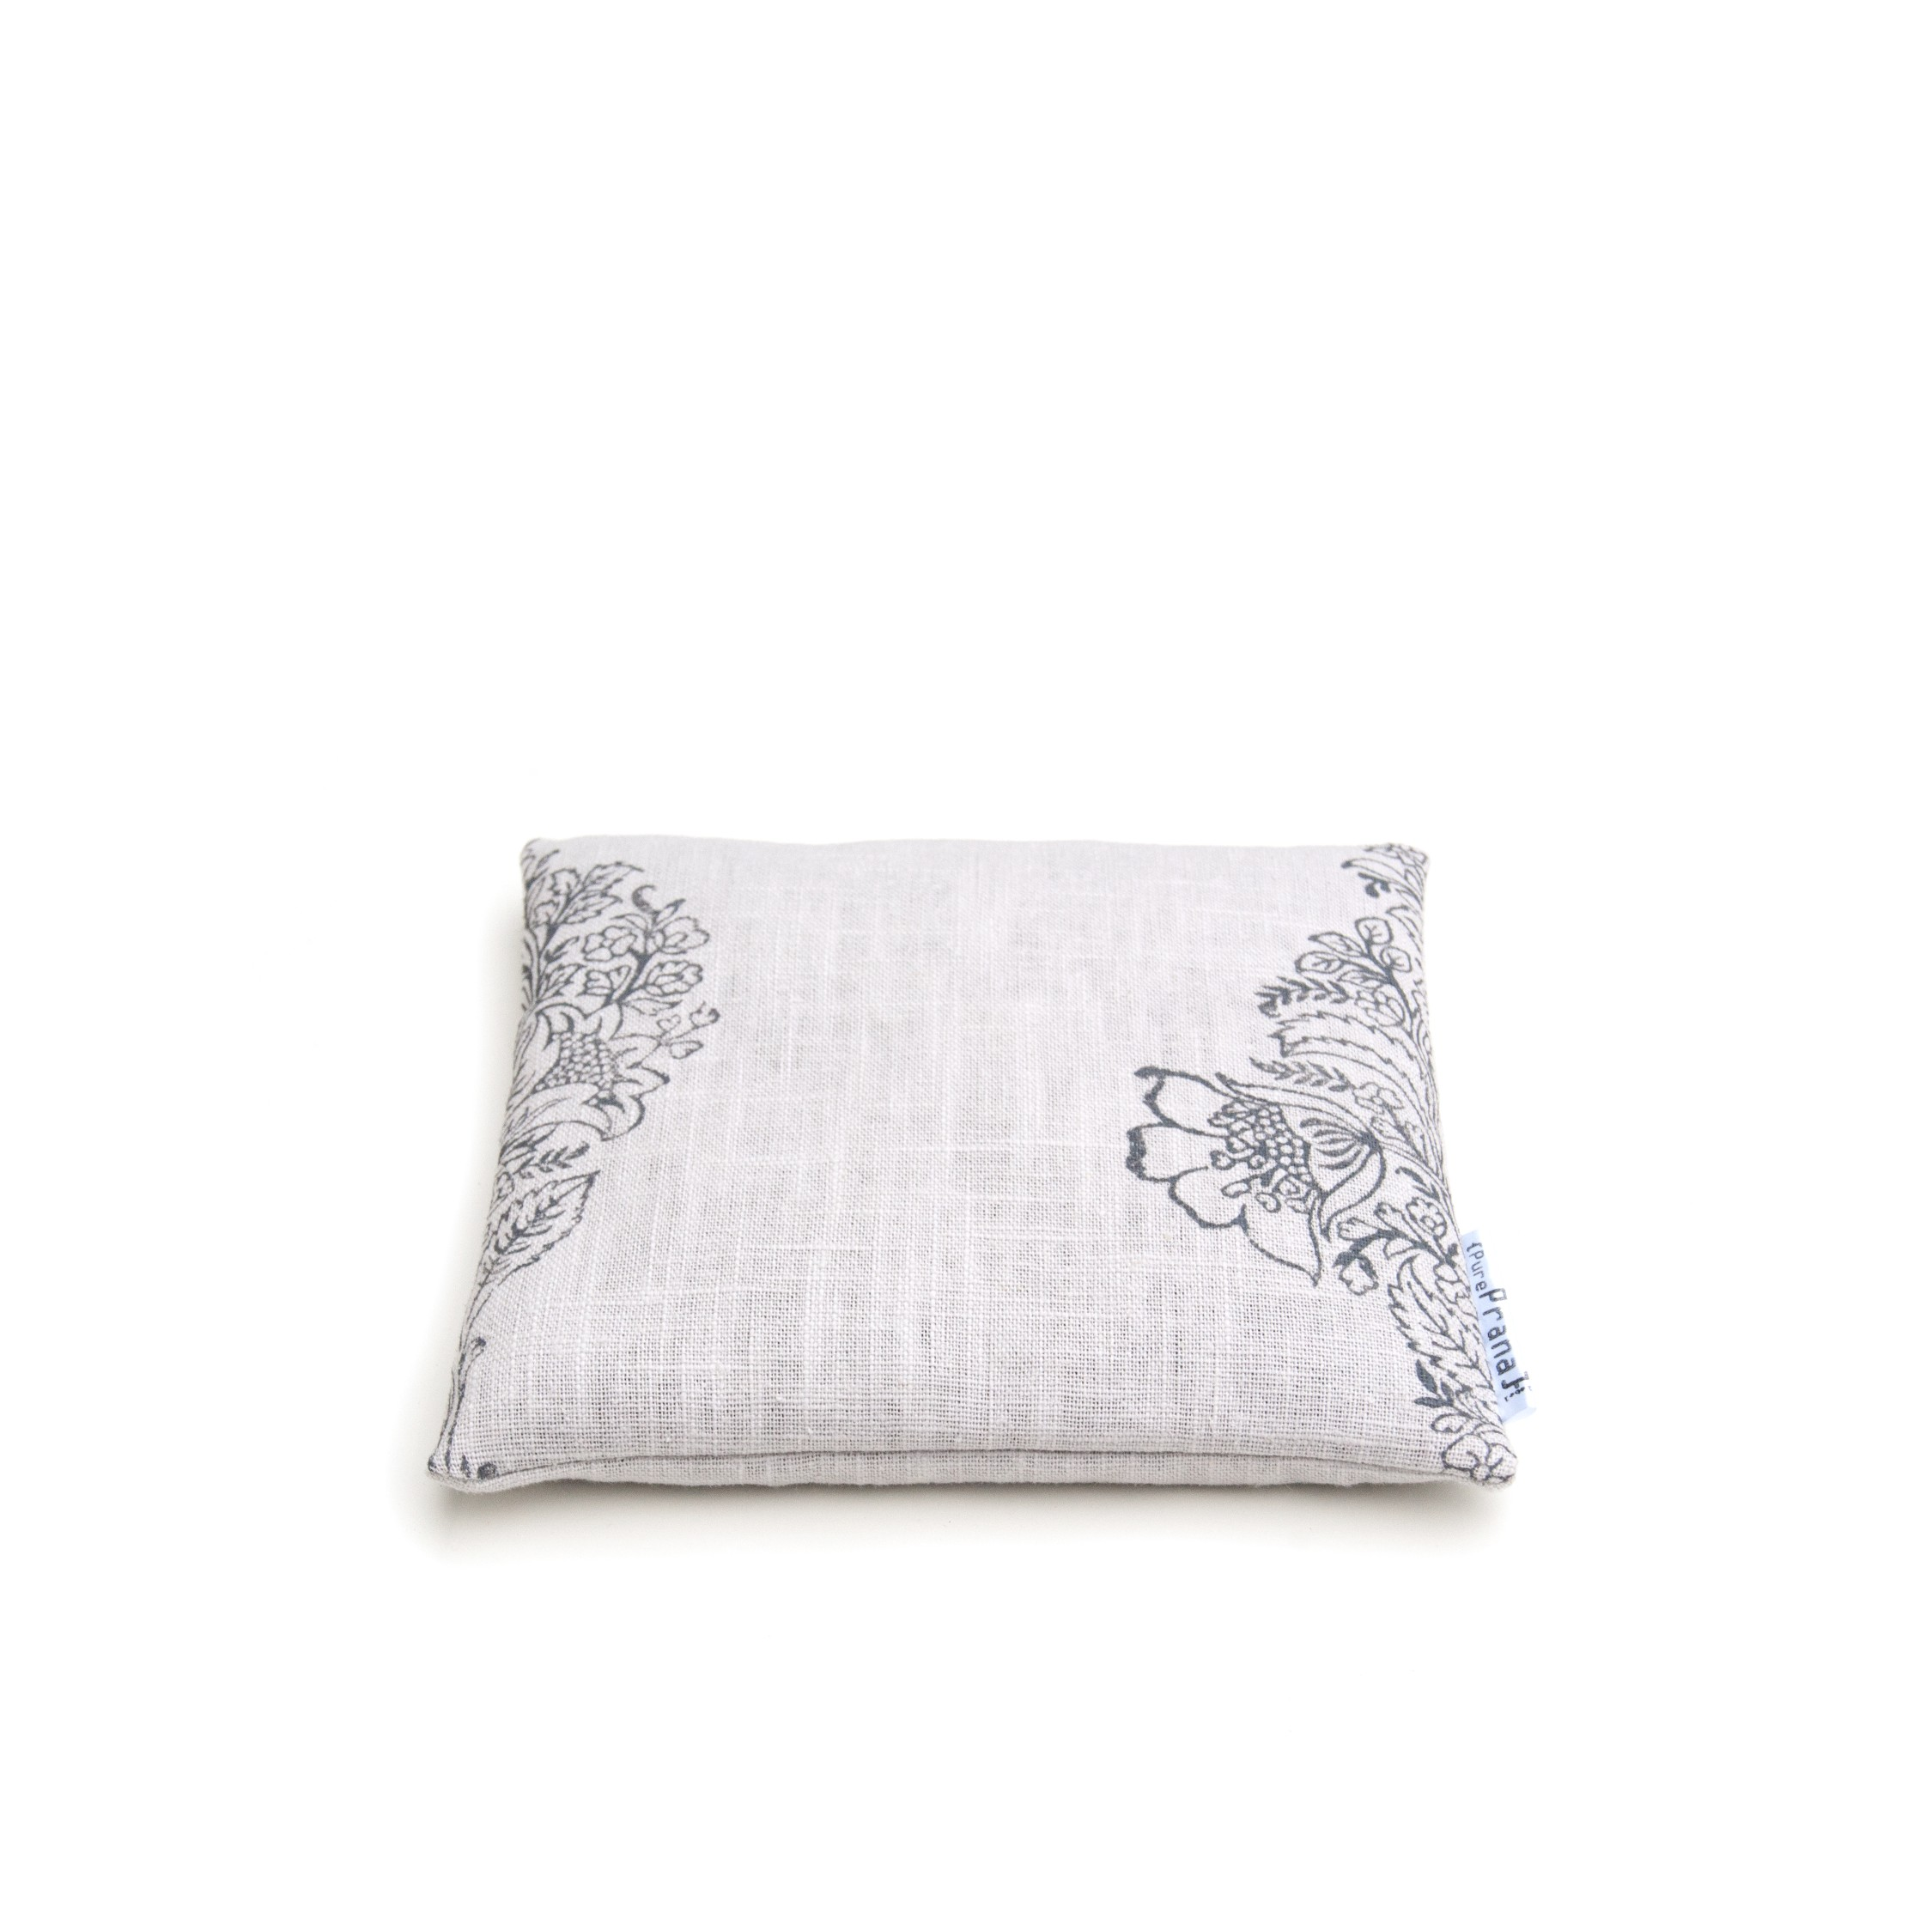 Singing bowl pillow Ethnic flower by Pure Prana Label